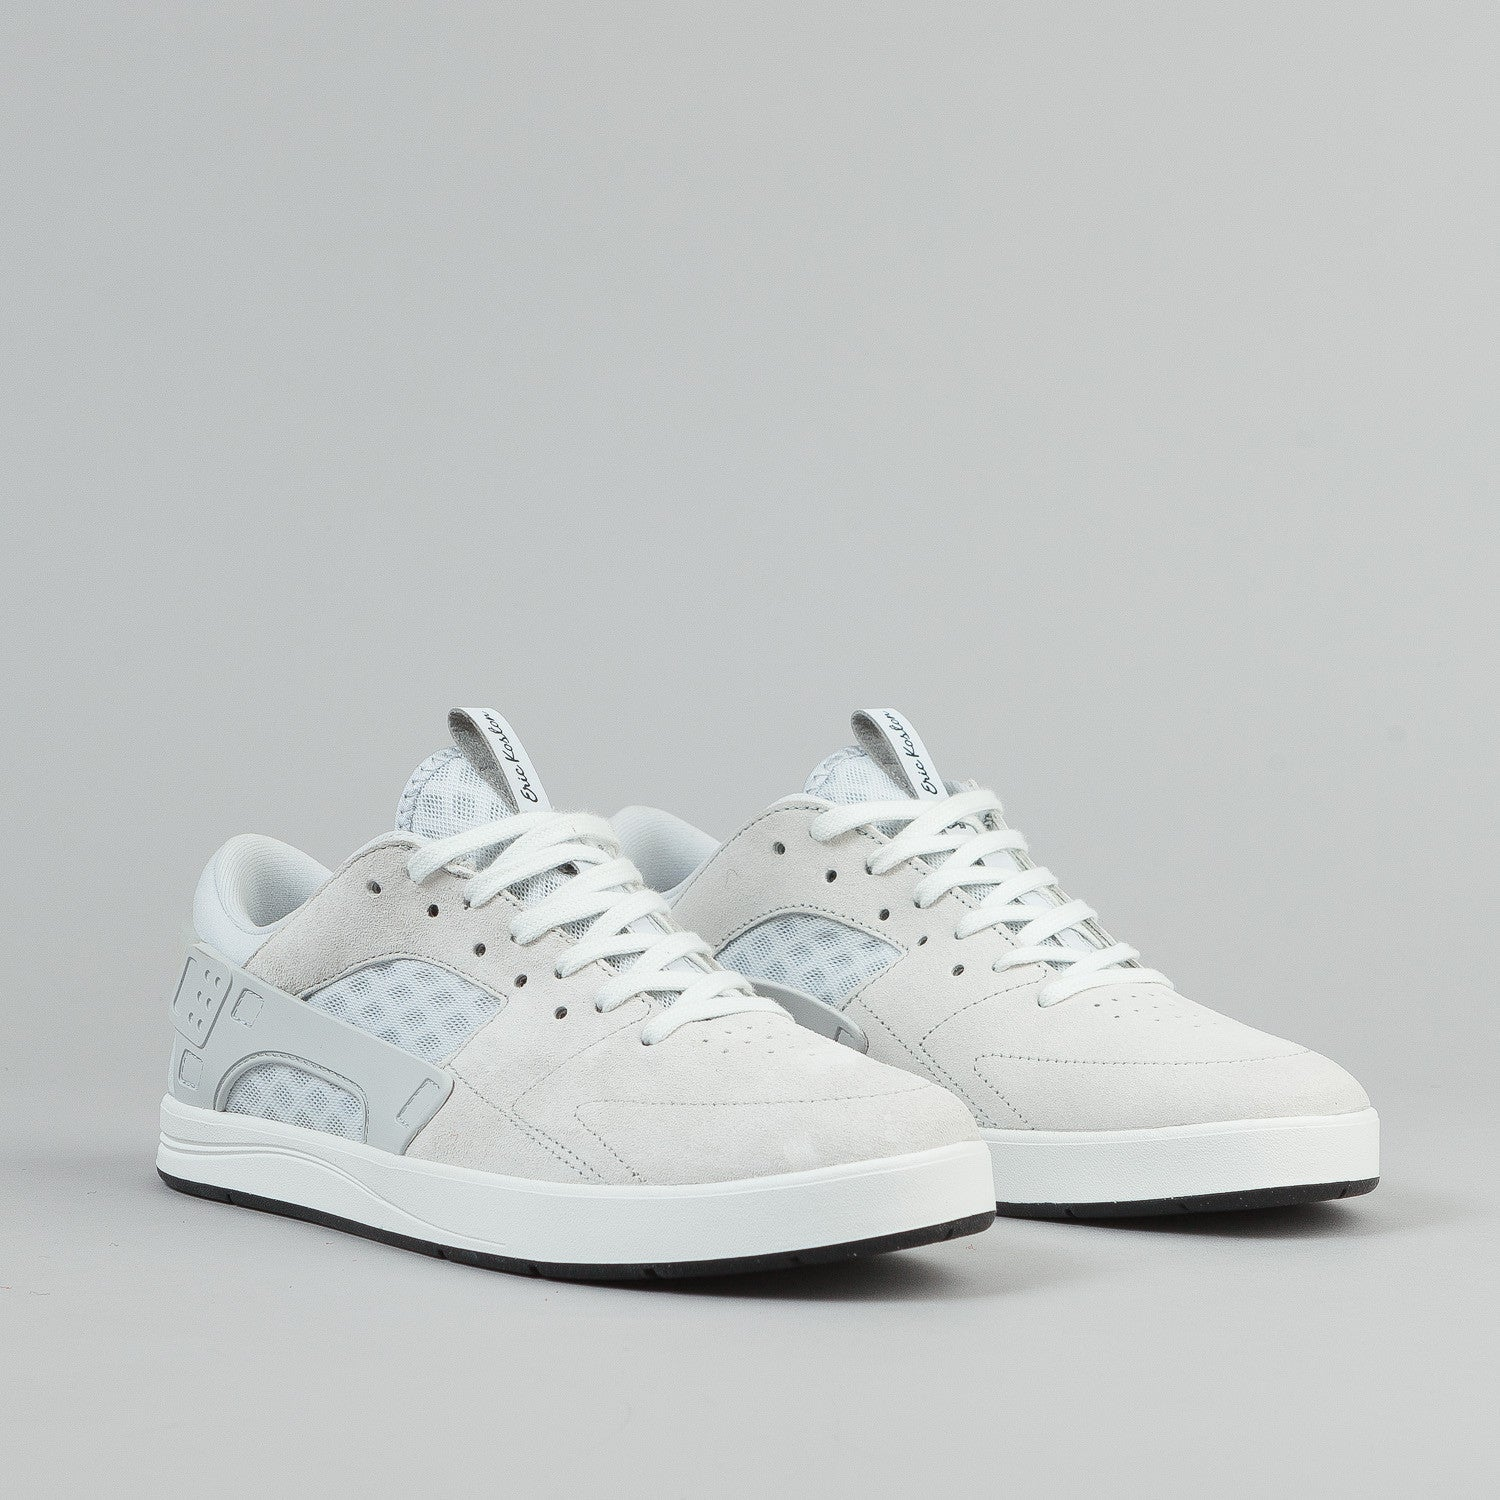 Nike SB Eric Koston Huarache Shoes - Summit White / Pure Platinum / Black